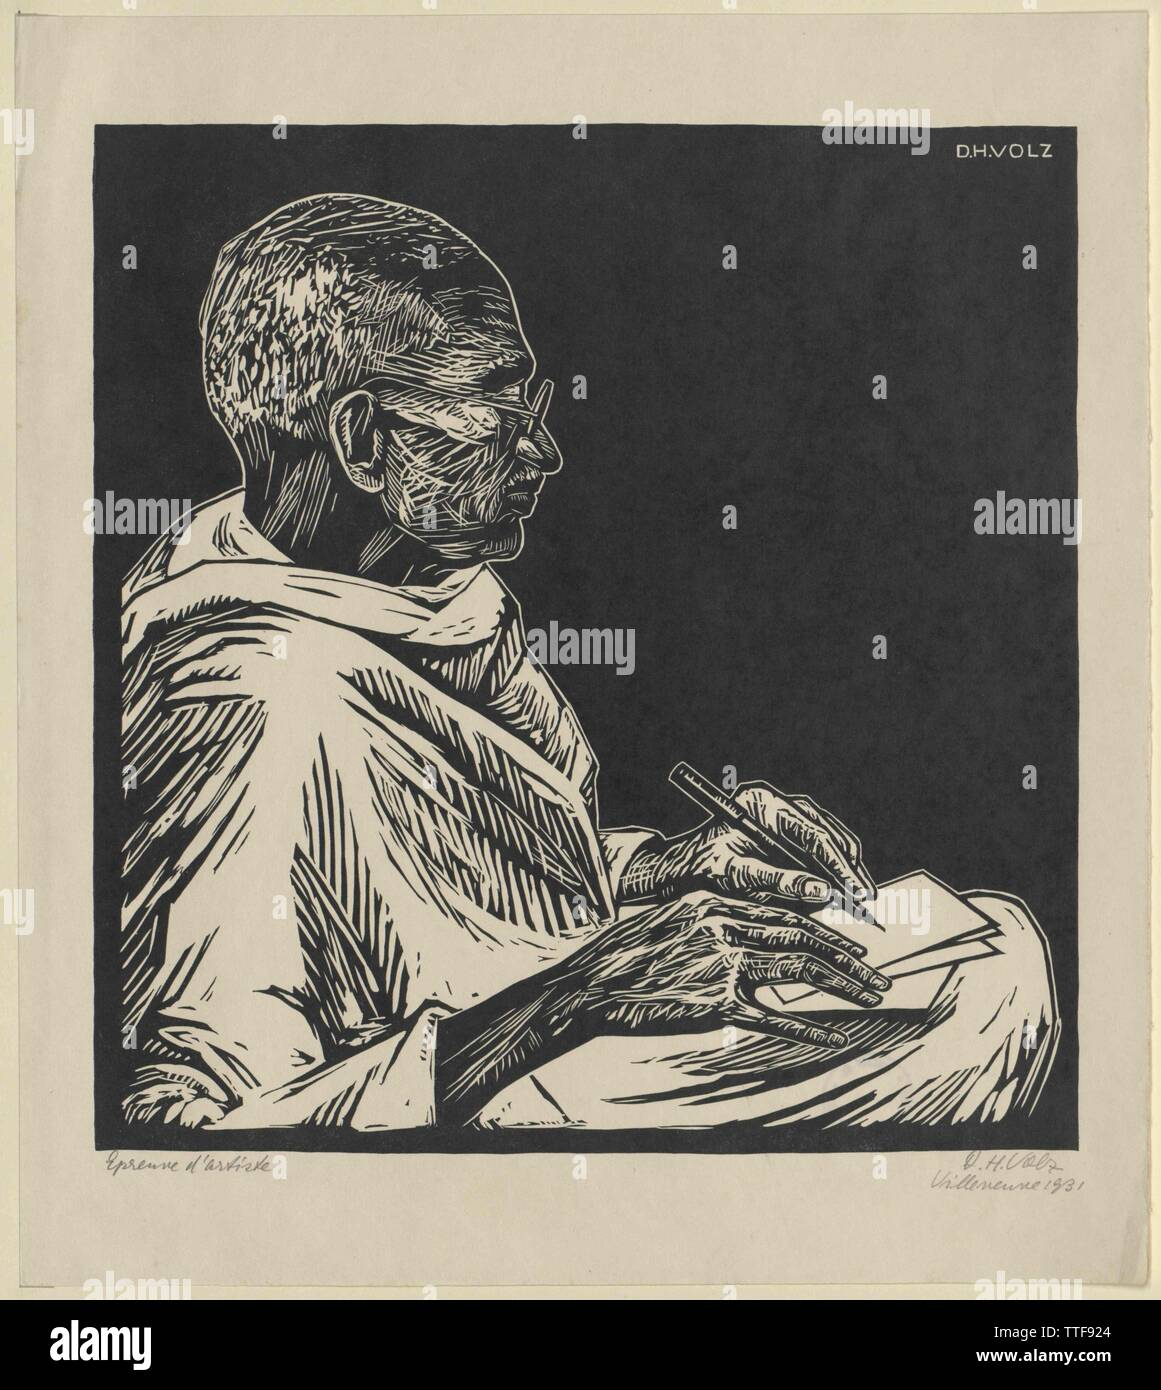 Gandhi, Mohandas Karamchand, Additional-Rights-Clearance-Info-Not-Available - Stock Image